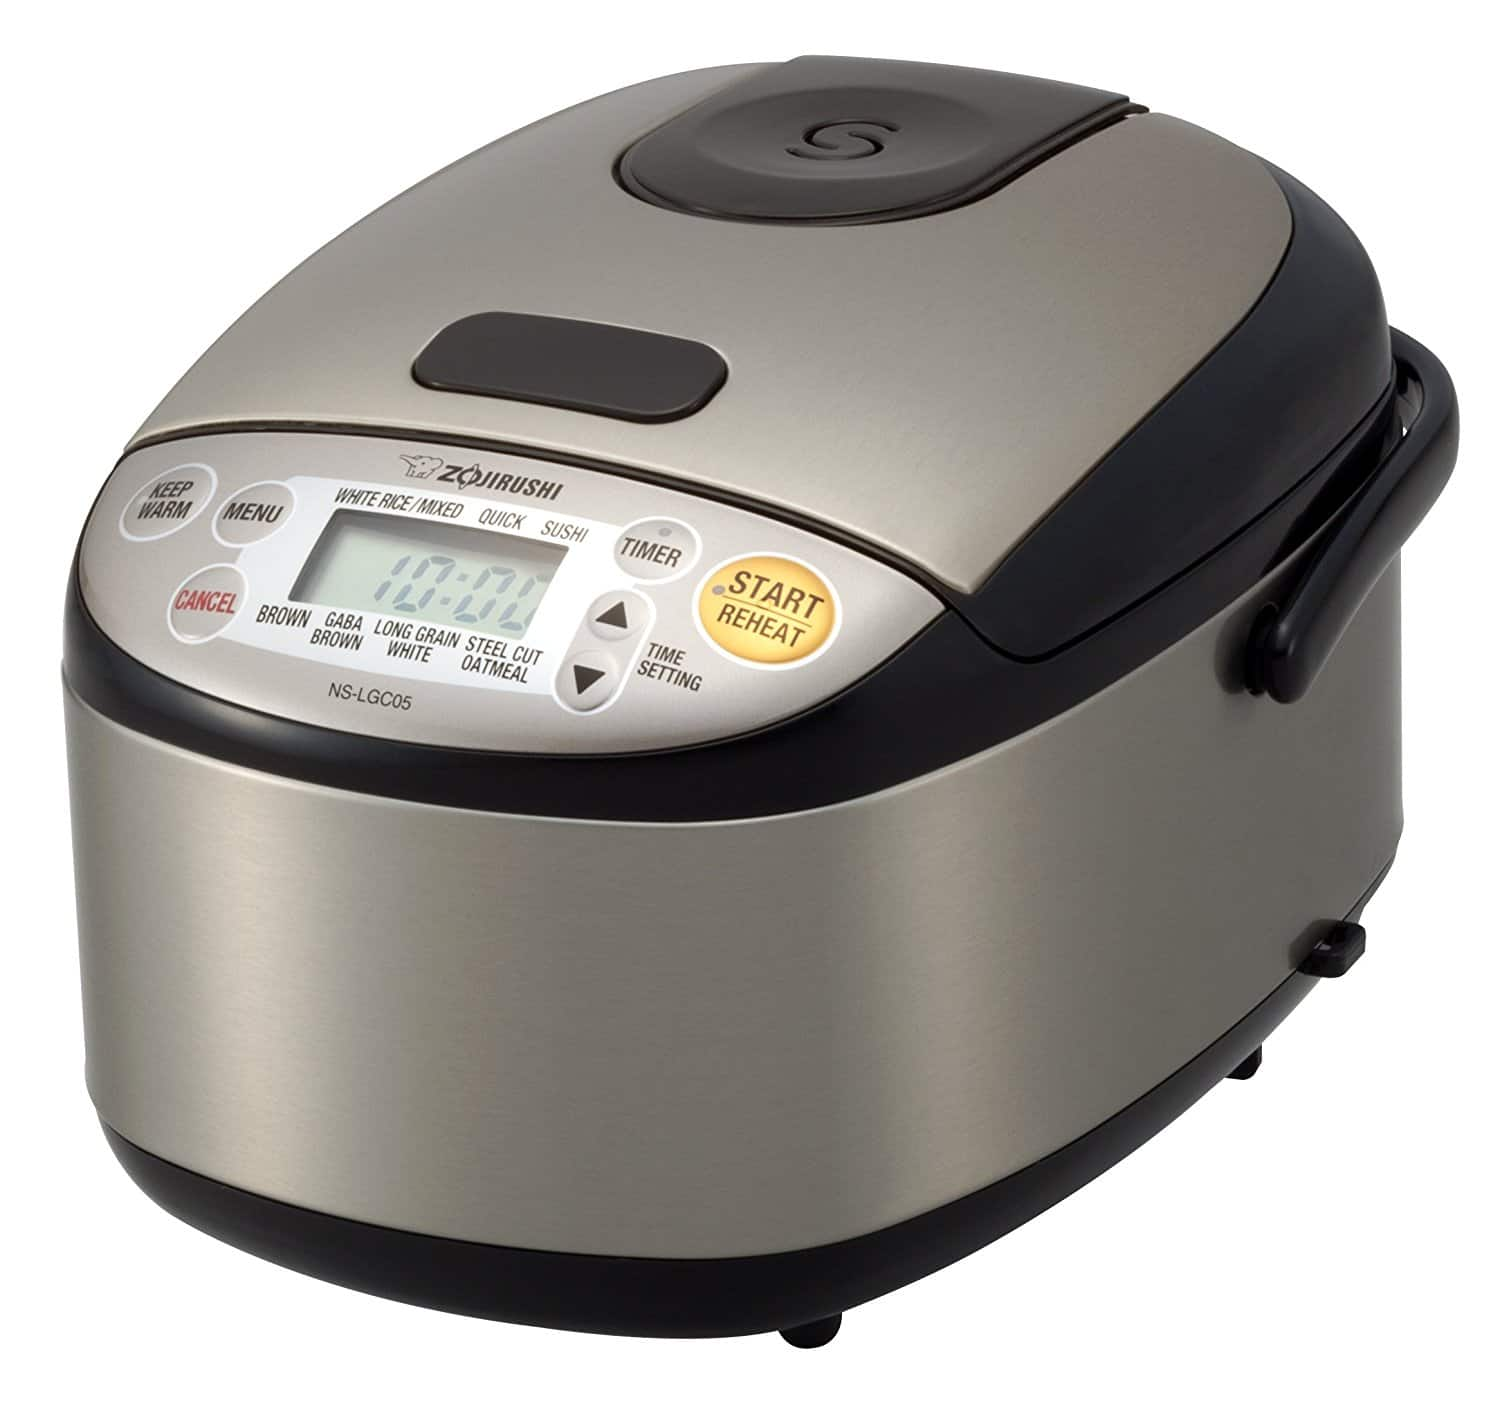 Zojirushi NS-LGC05XB Micom Rice Cooker & Warmer, Stainless Black for $99